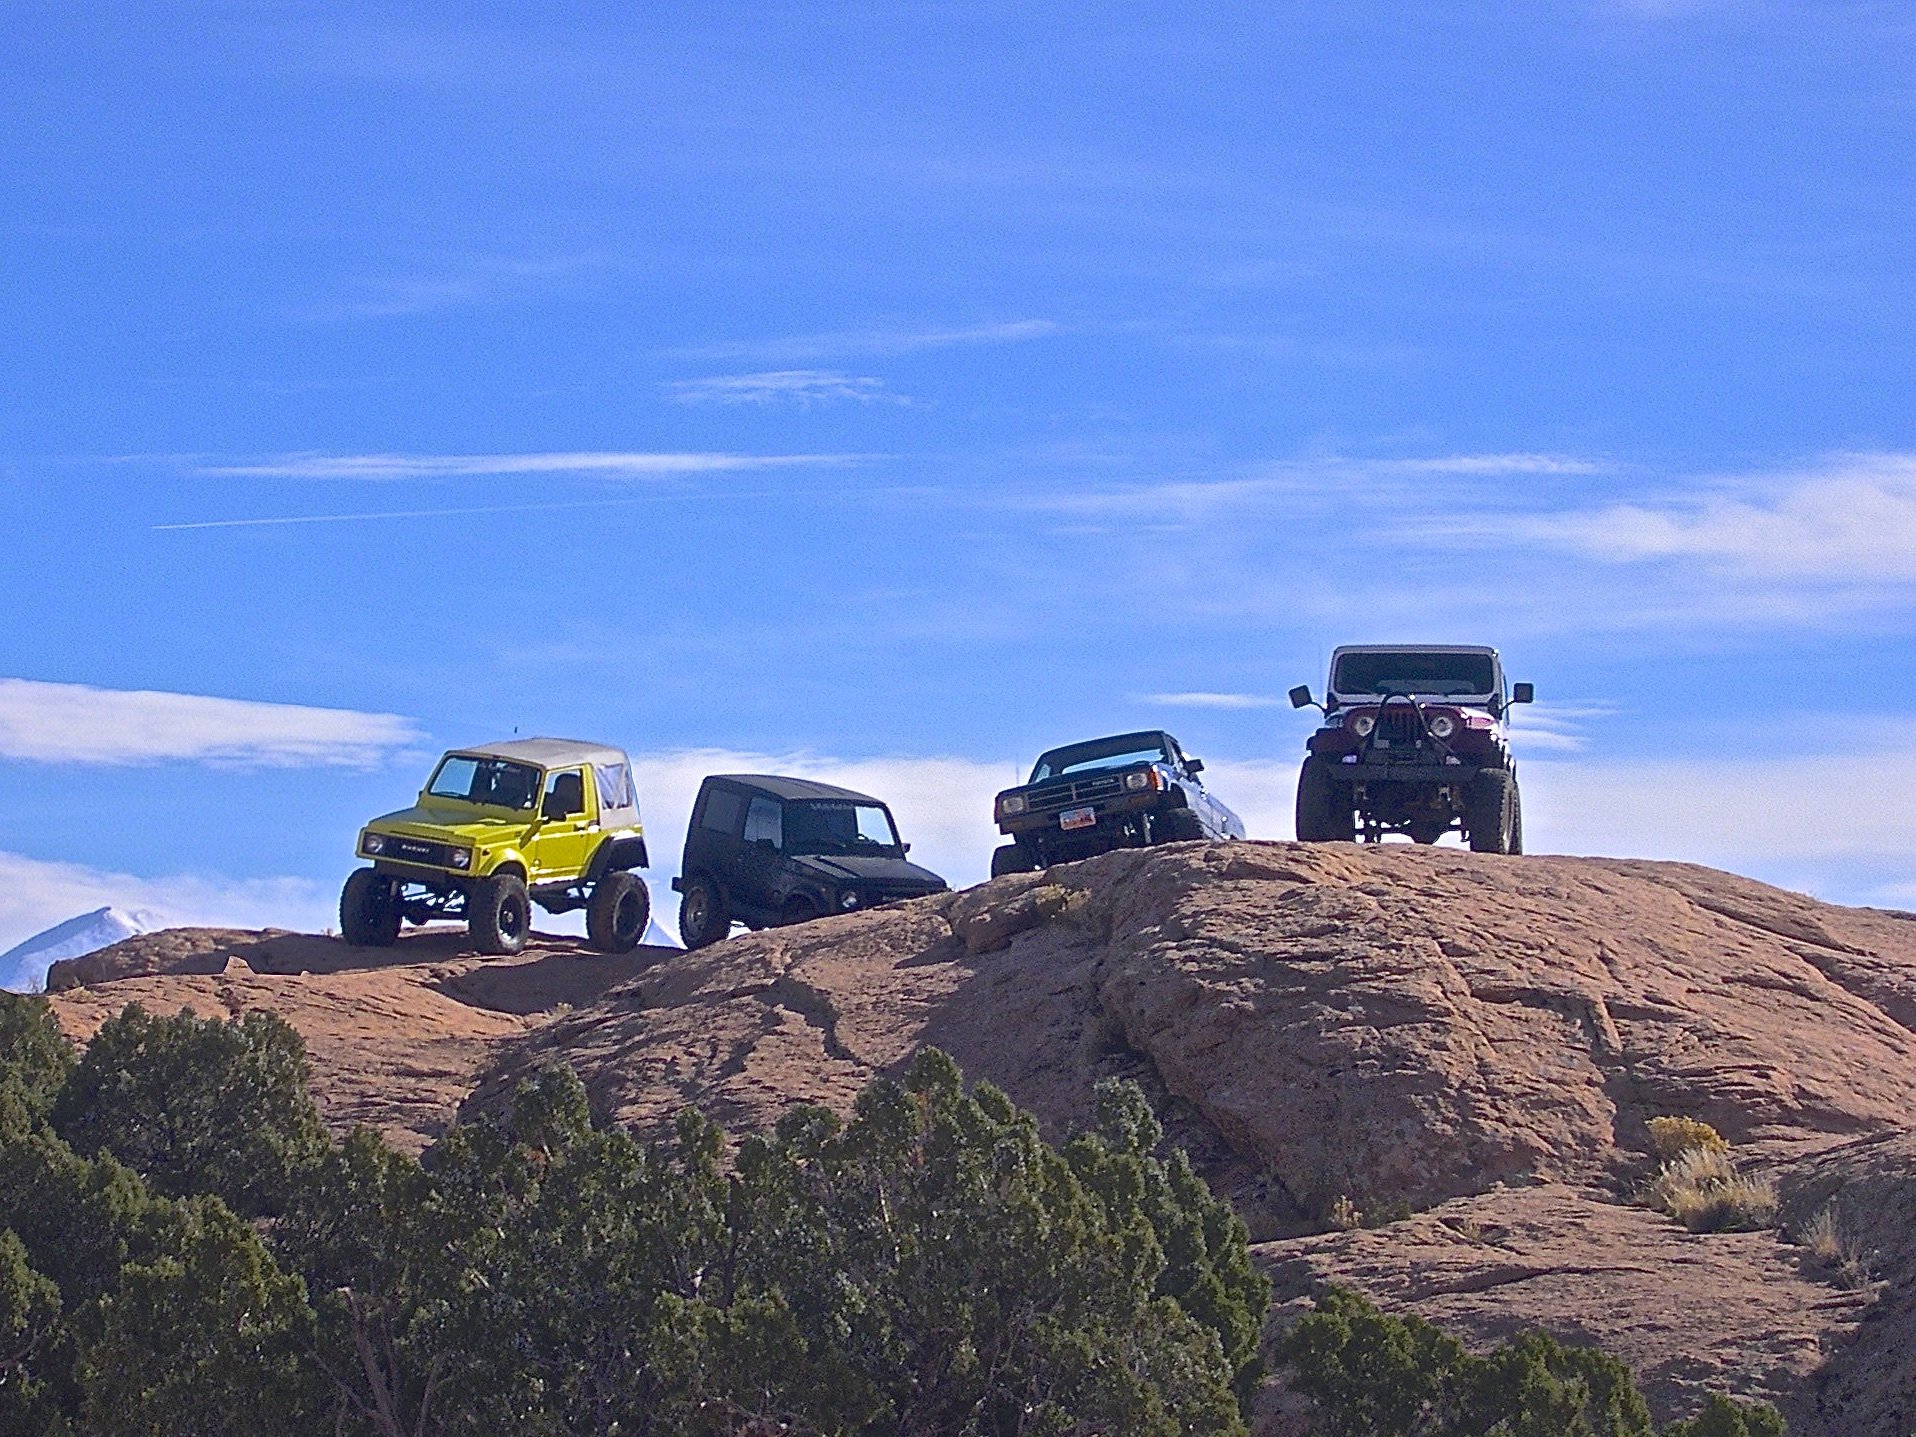 Rigs belonging to: Steve, Sean, and Chris Conk and friend Don on trail in Moab, Utah, USA